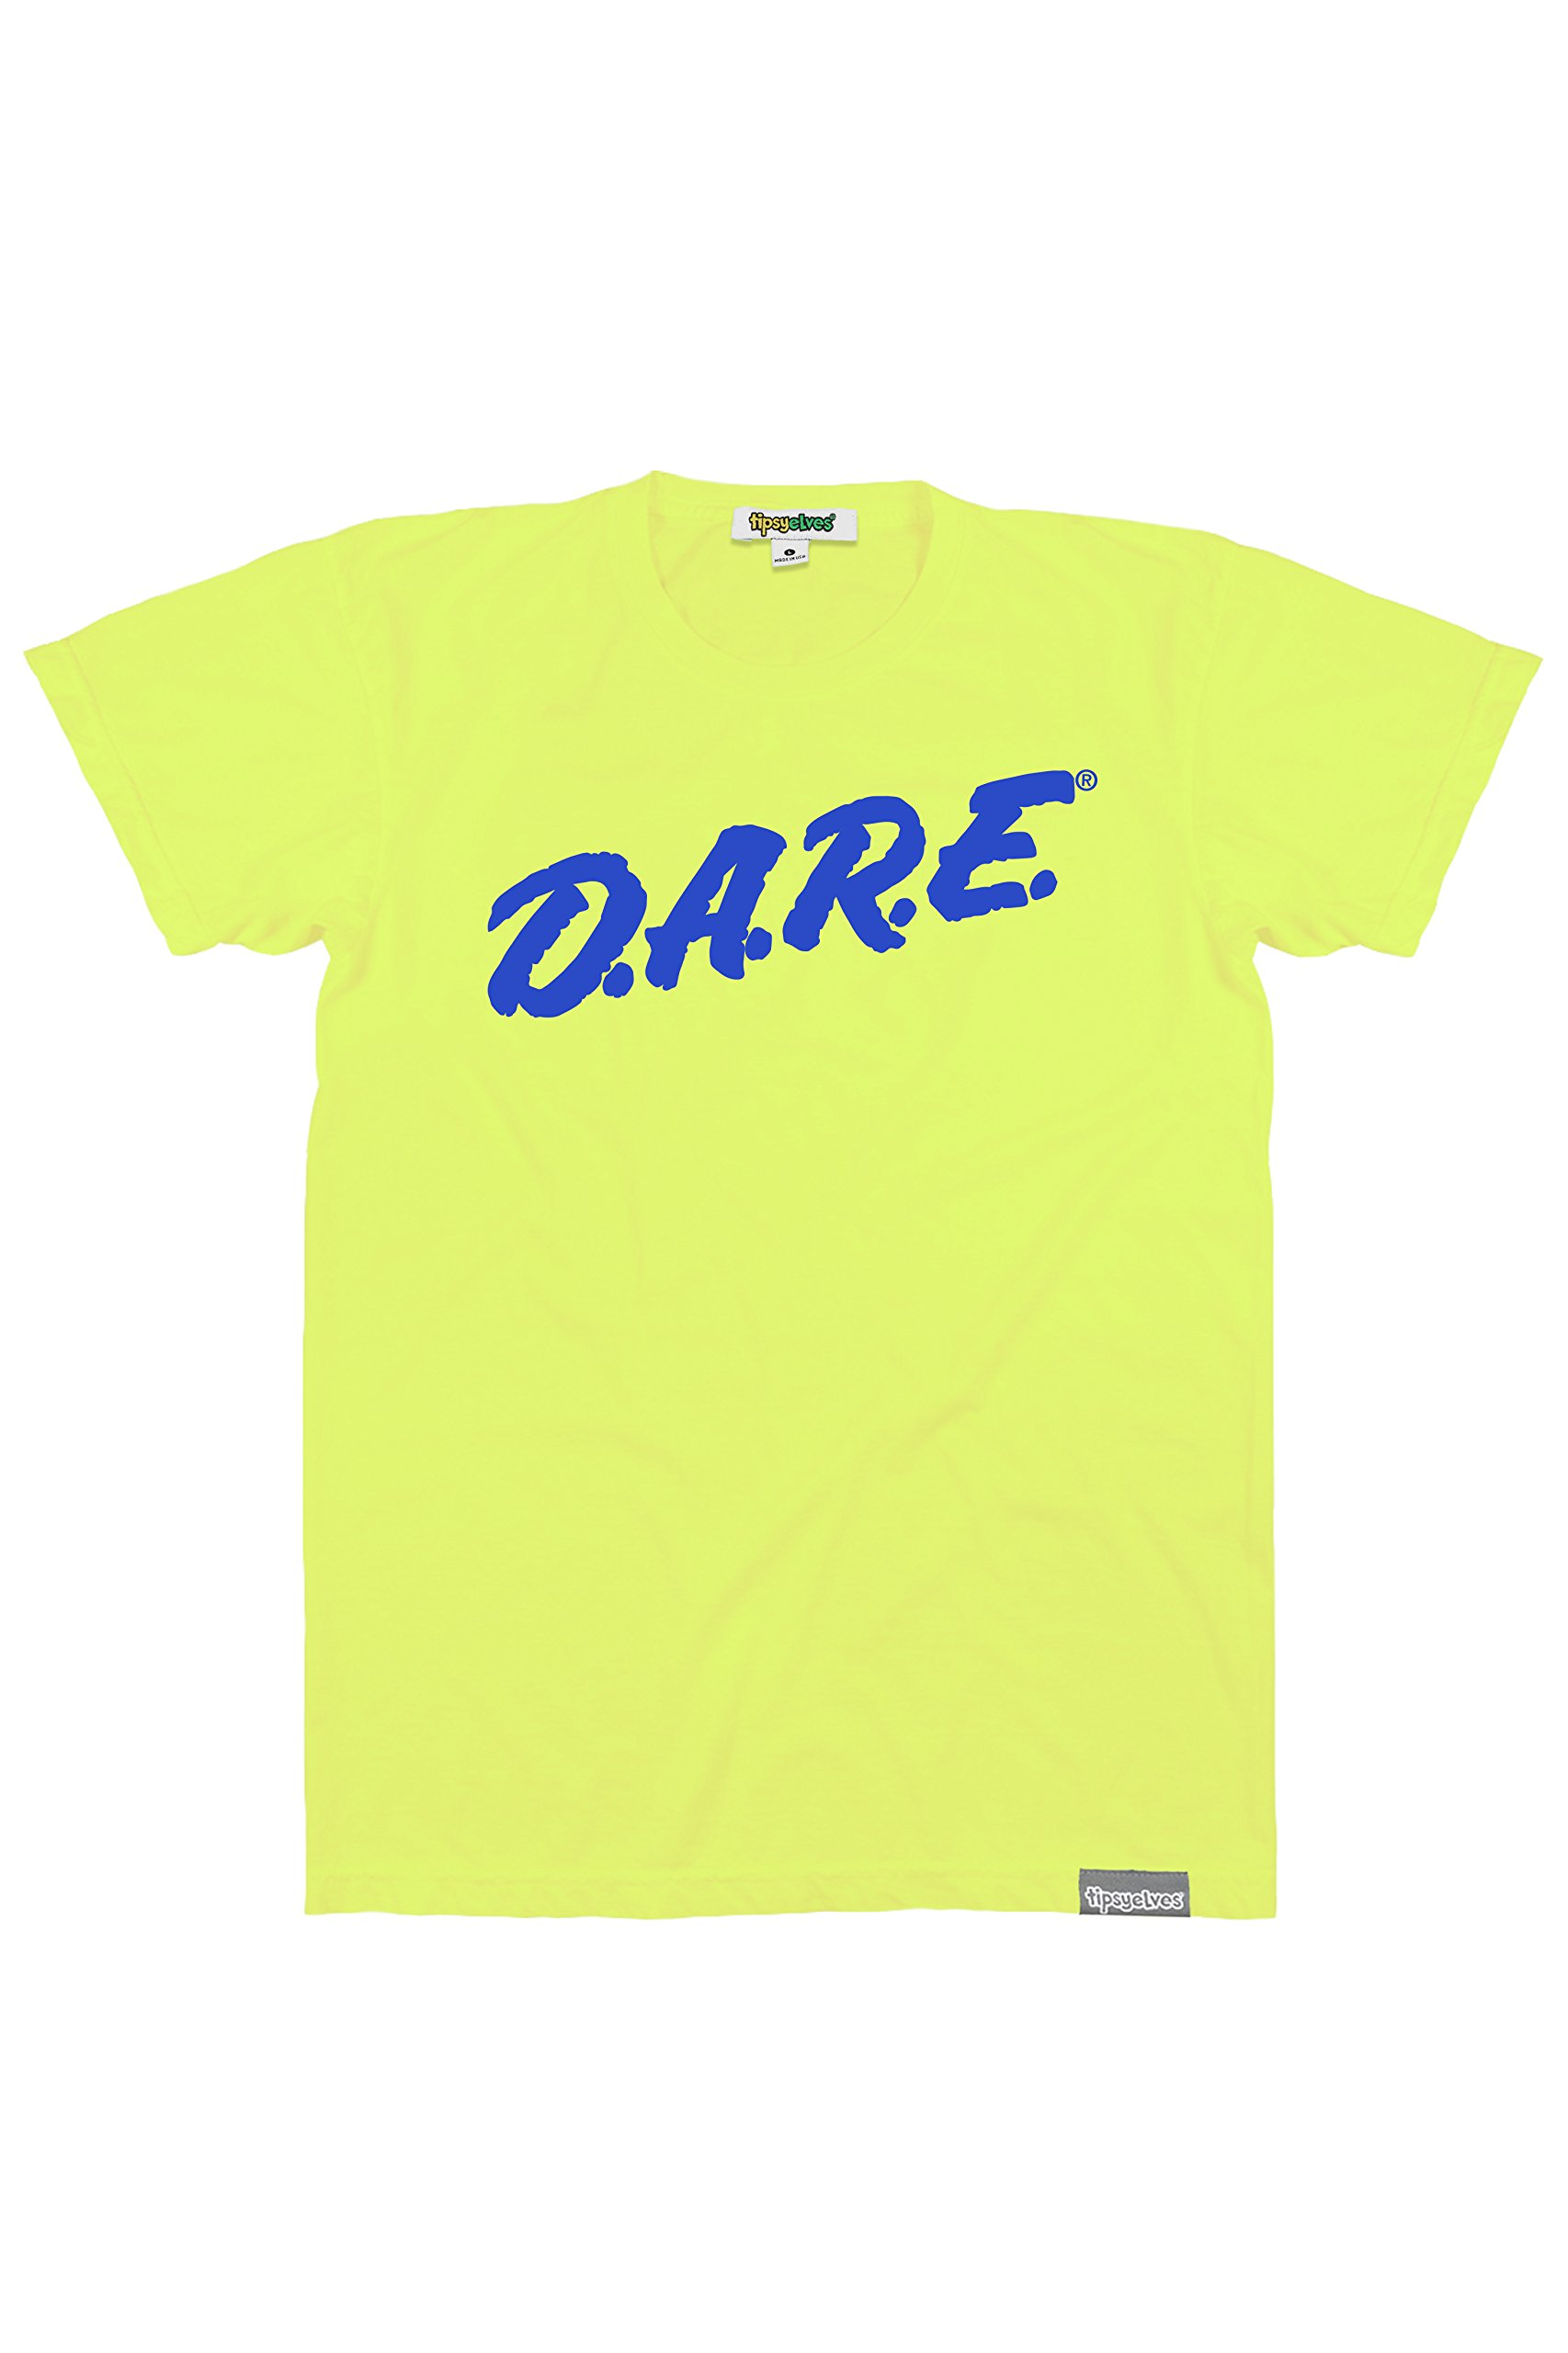 Tipsy Elves Men's Neon Yellow Dare Shirt - Retro Neon 80's Clothing Tee (Large)